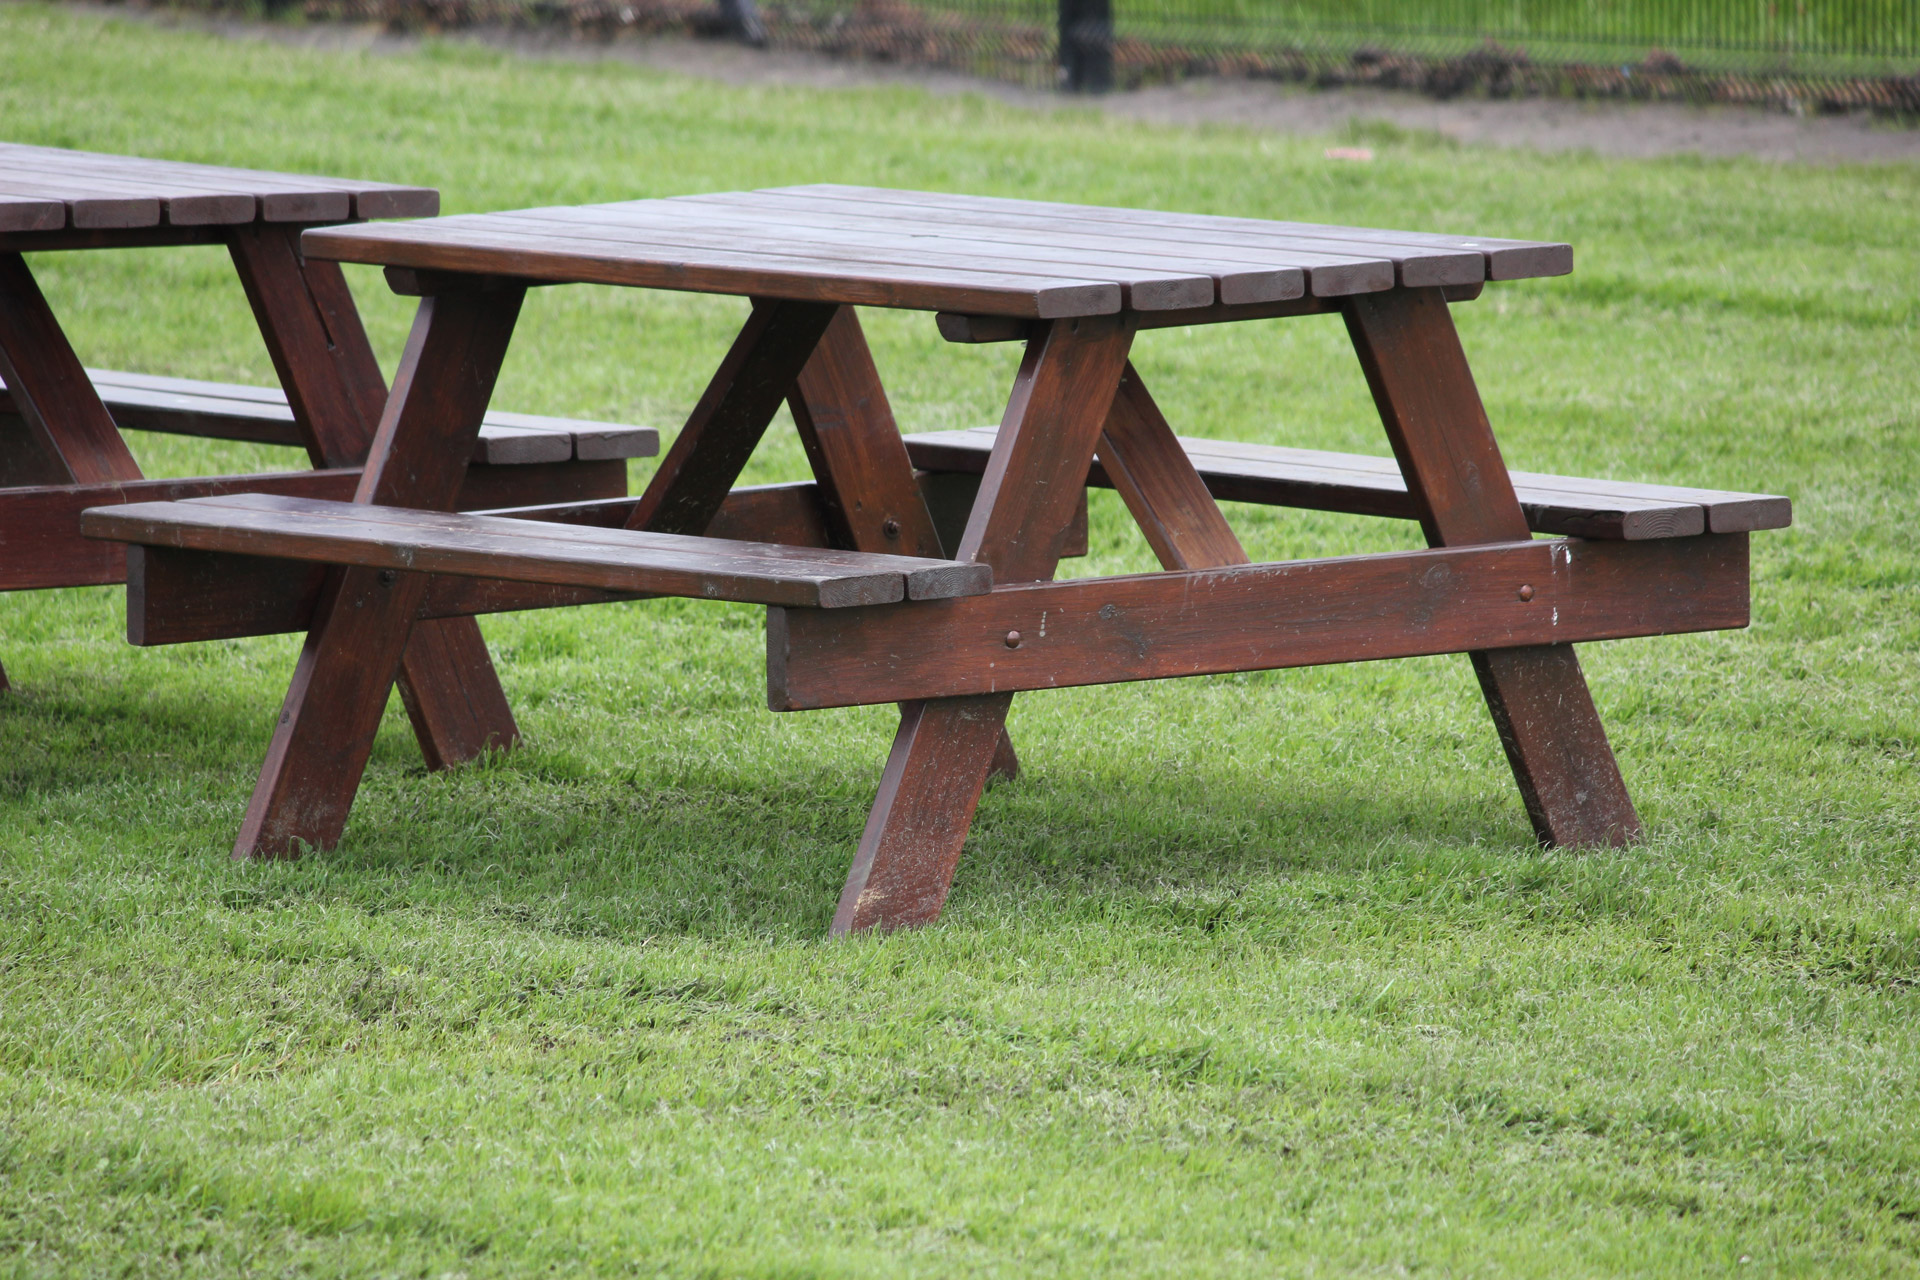 wood for picnic table